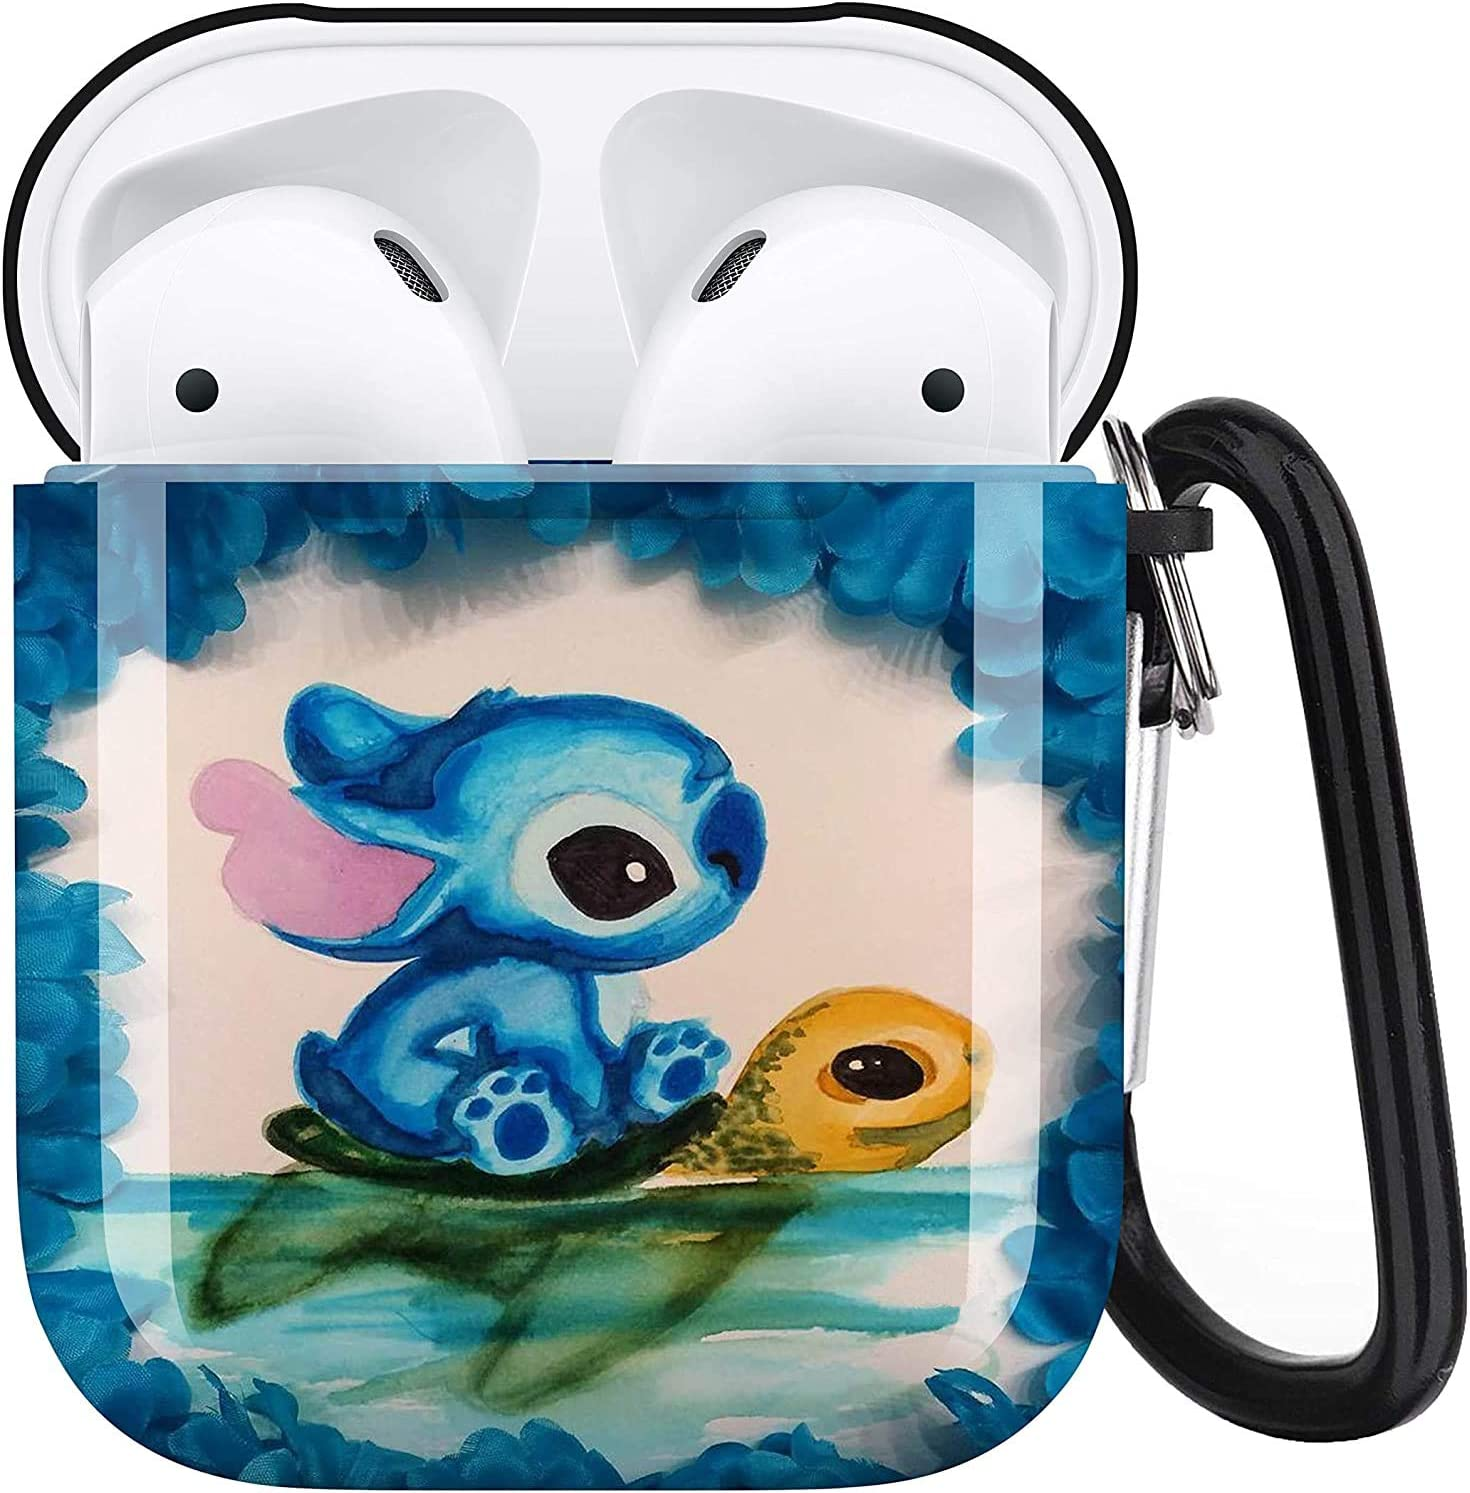 Stitch Aripod Personalise Custom, AirPod Case Cover Compatiable with Apple AirPods 1st/2nd,Full Protective Durable Shockproof Drop Proof with Keychain Compatible